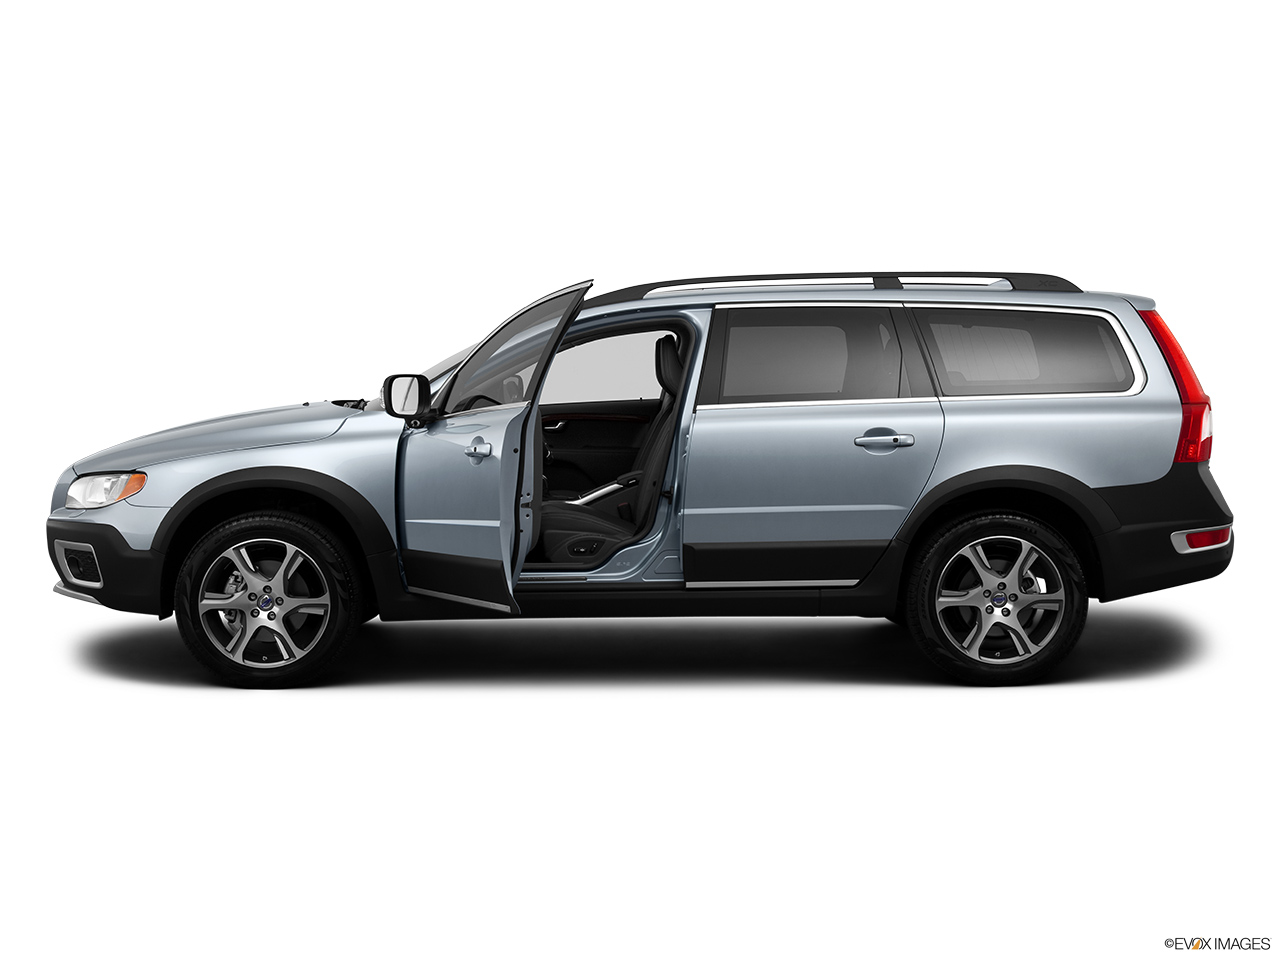 2013 Volvo XC70 T6 AWD Platinum Driver's side profile with drivers side door open.